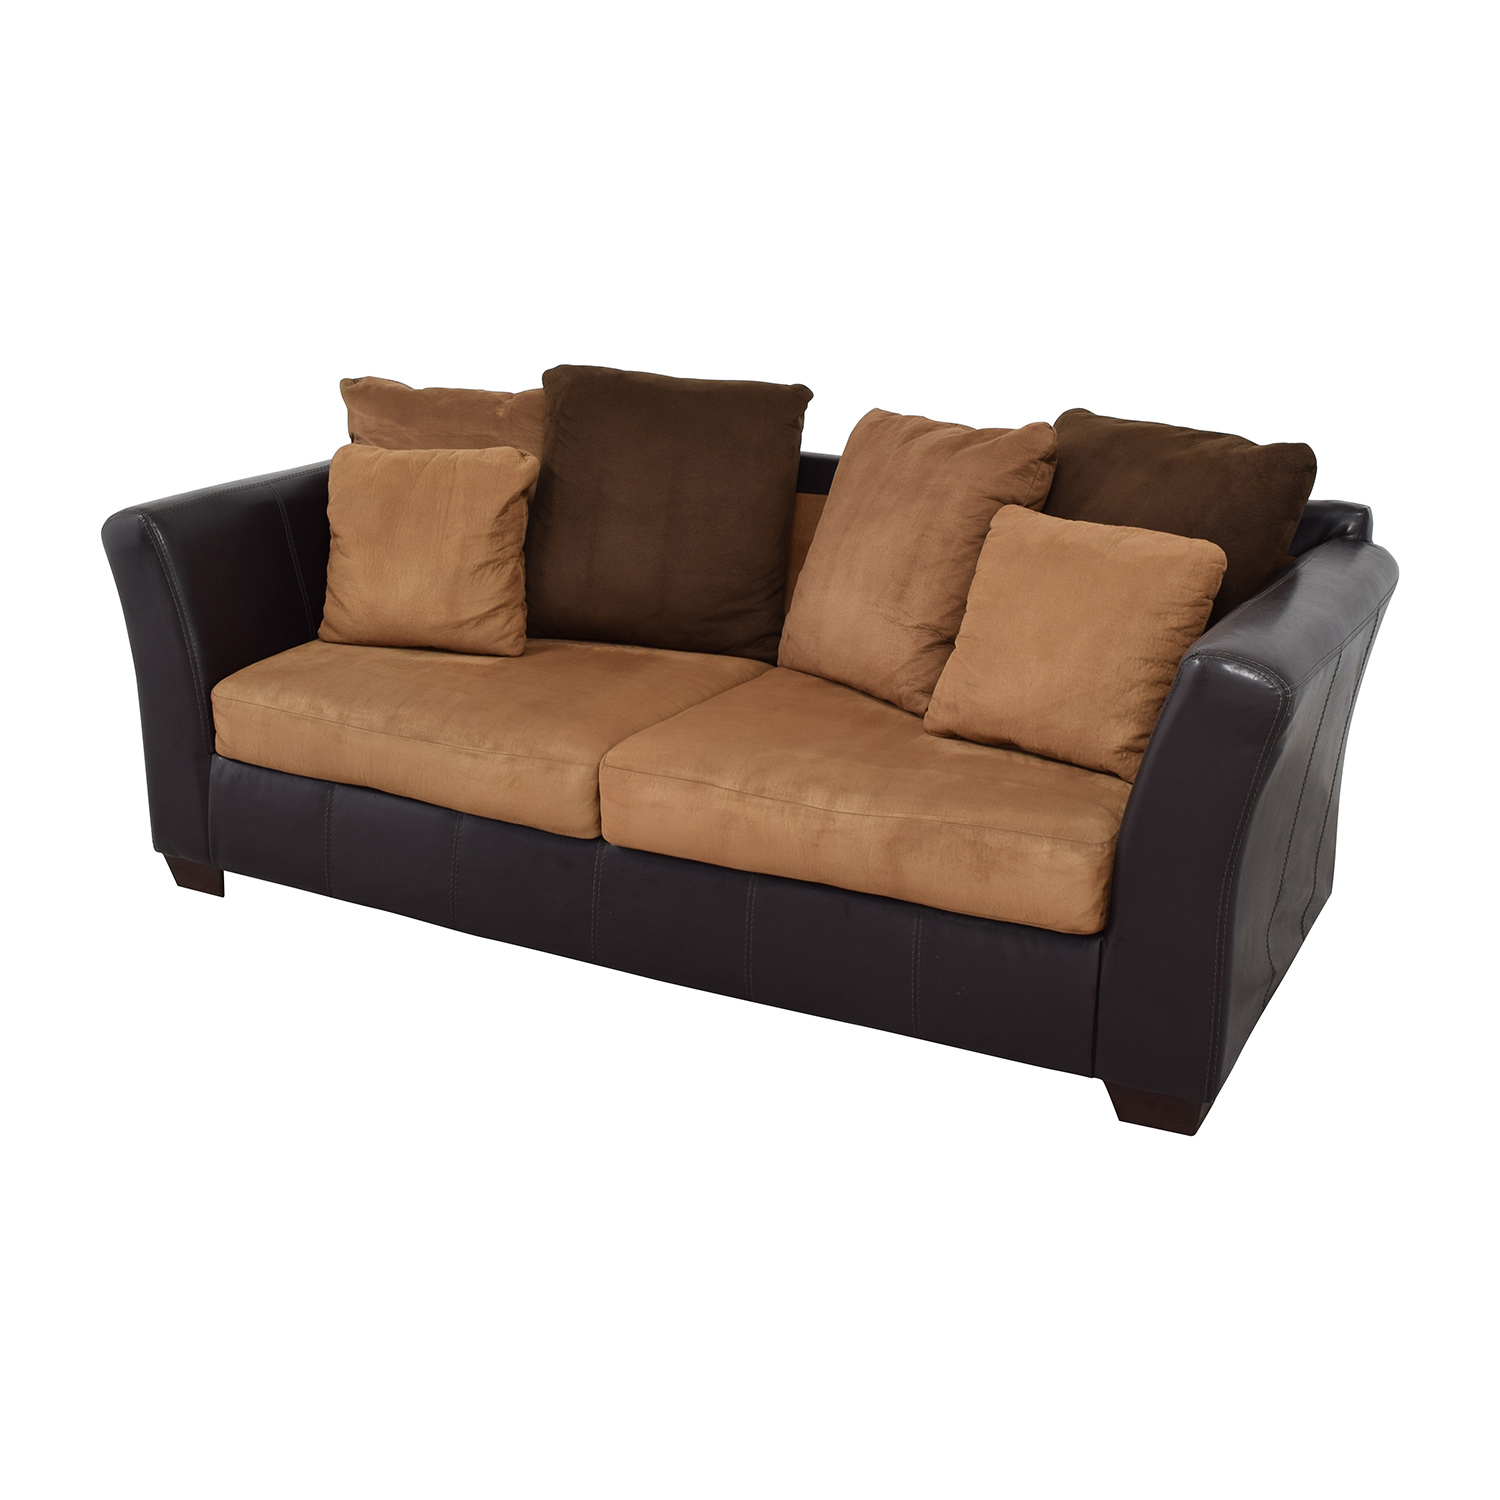 accent sofa pillows reclining for sale kijiji 43 off ashley furniture with